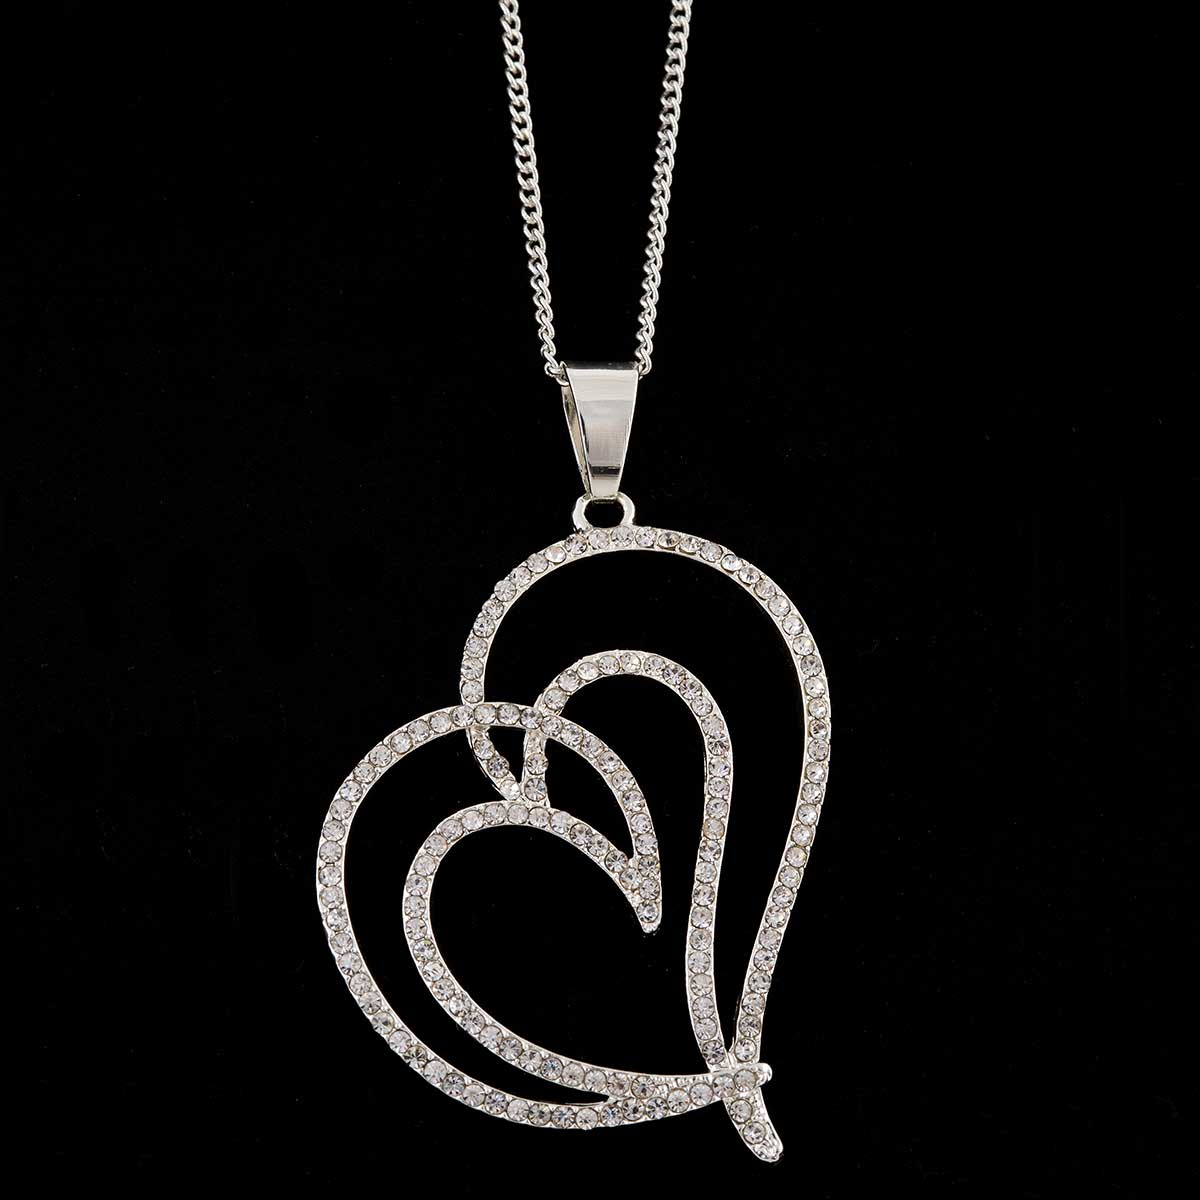 Silver Heart with Crystals Necklace on Chain